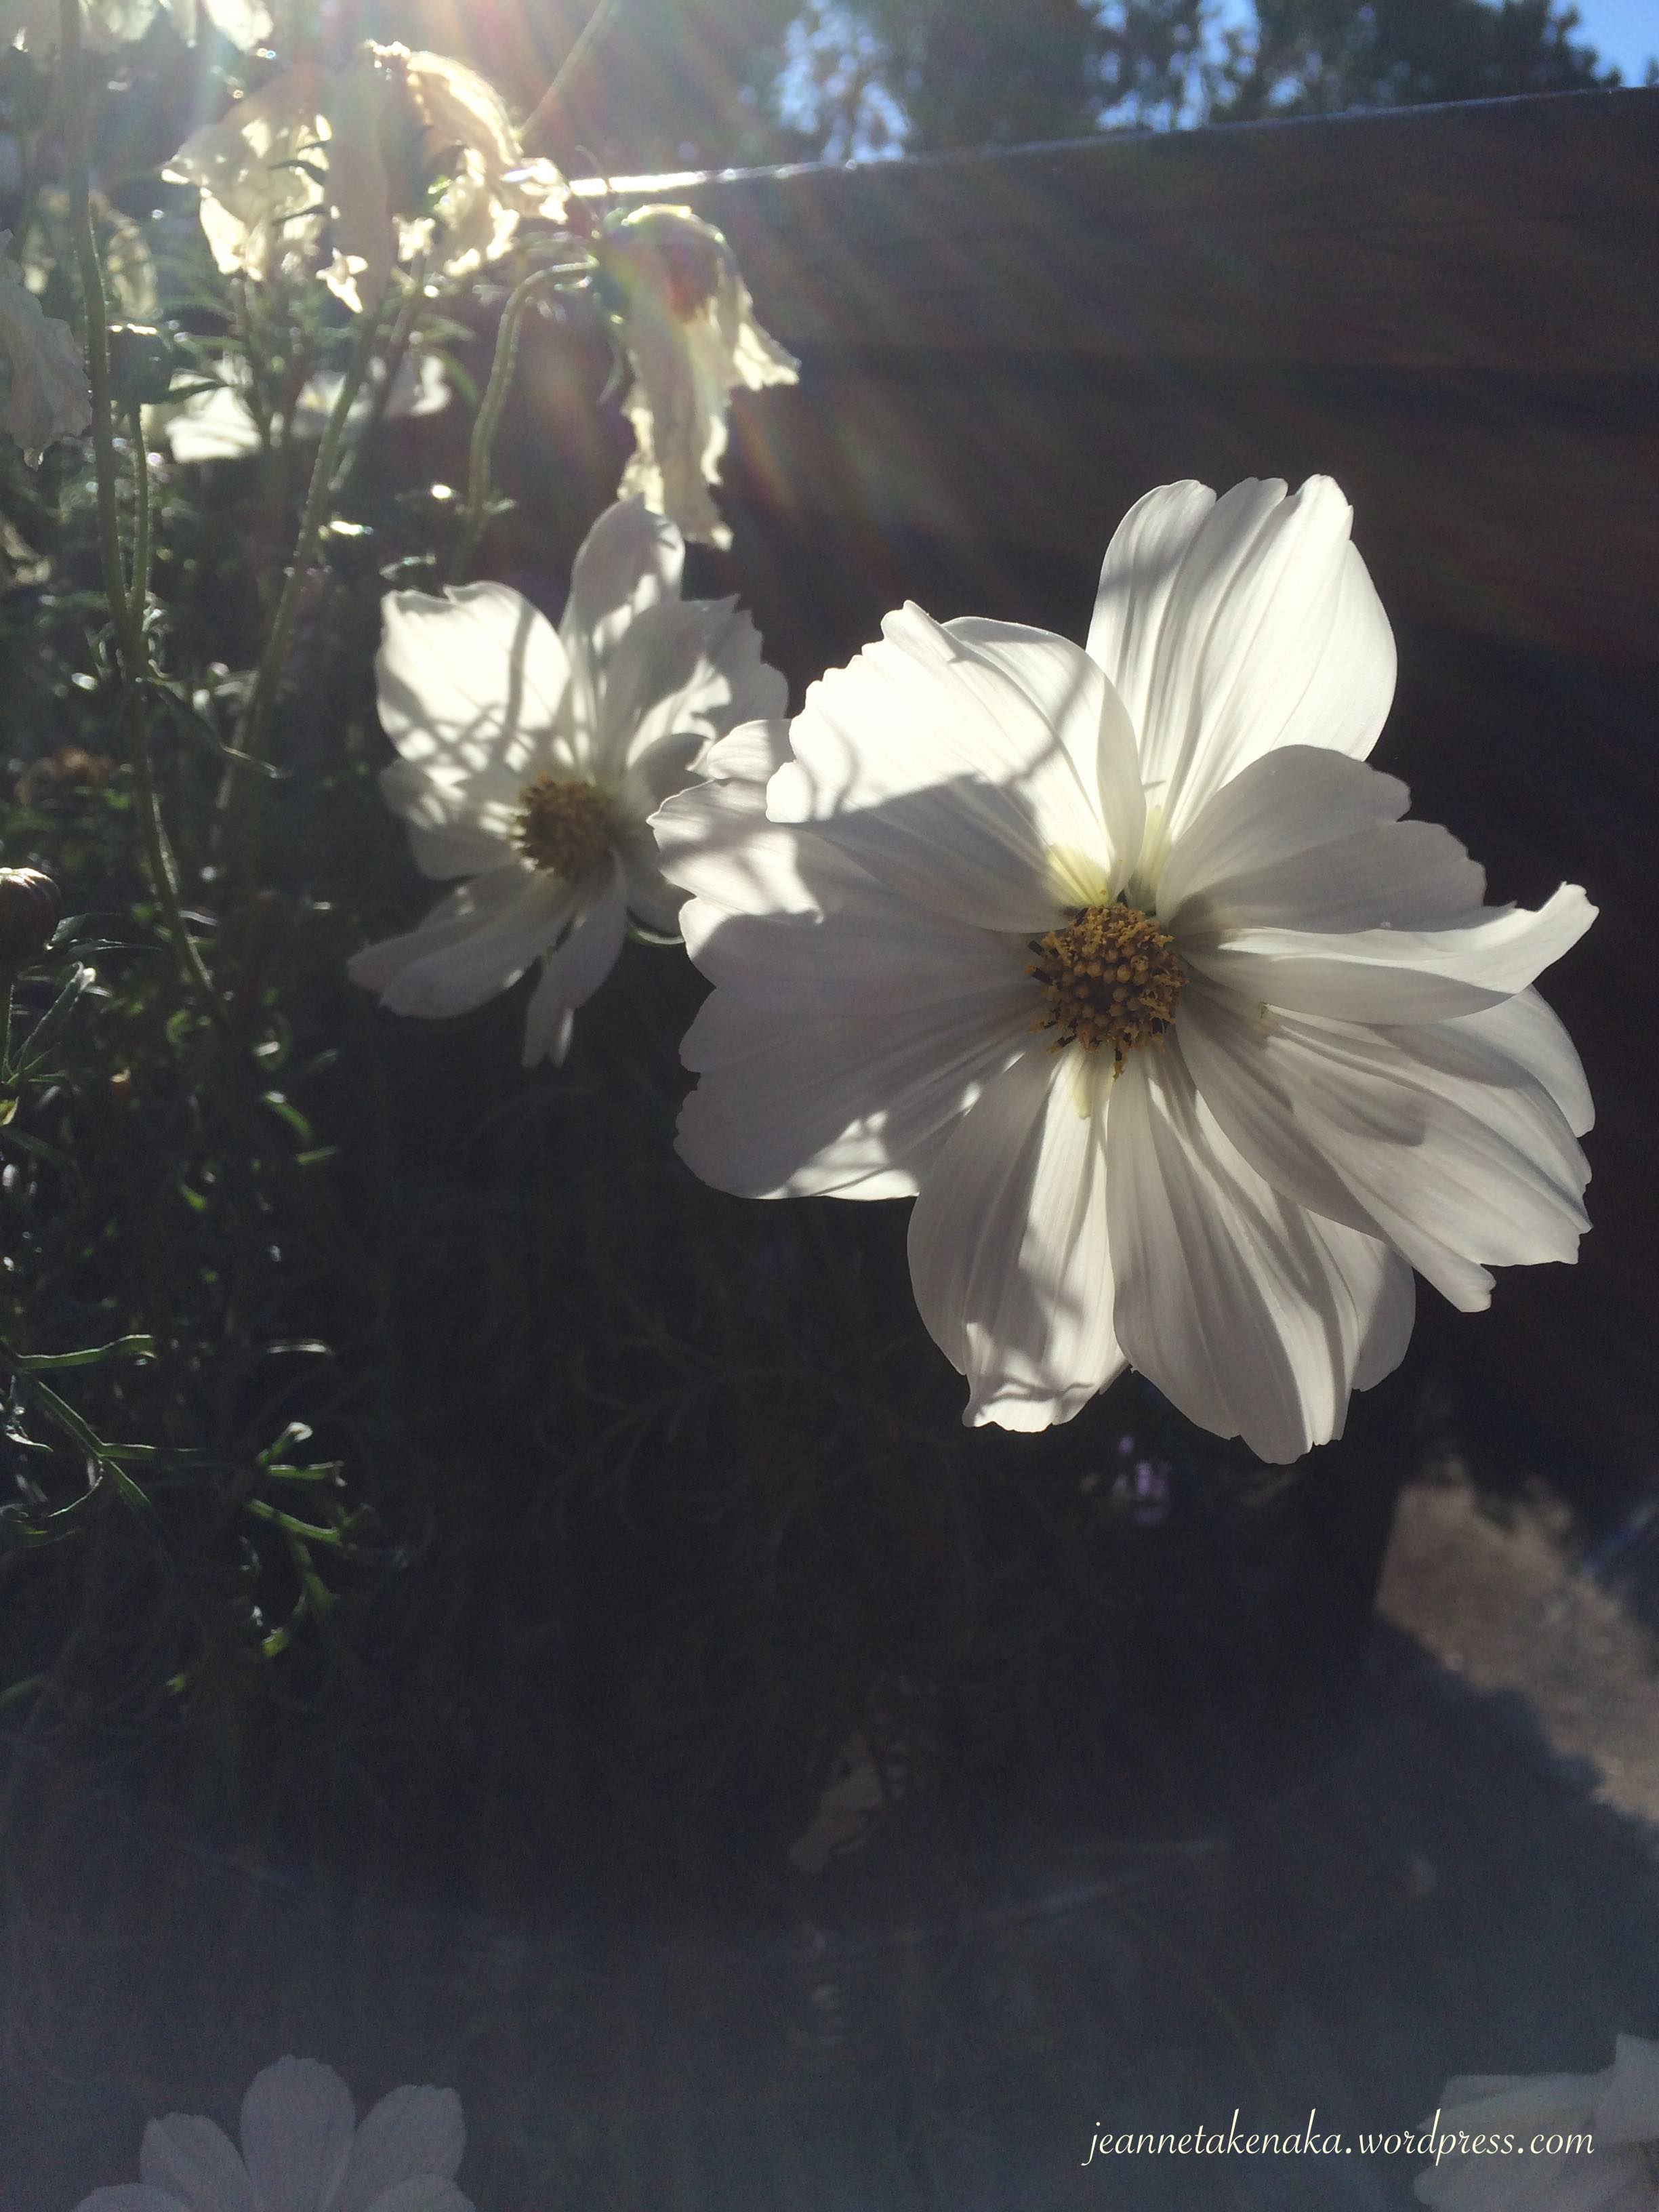 White flowers with the sun shining behind them